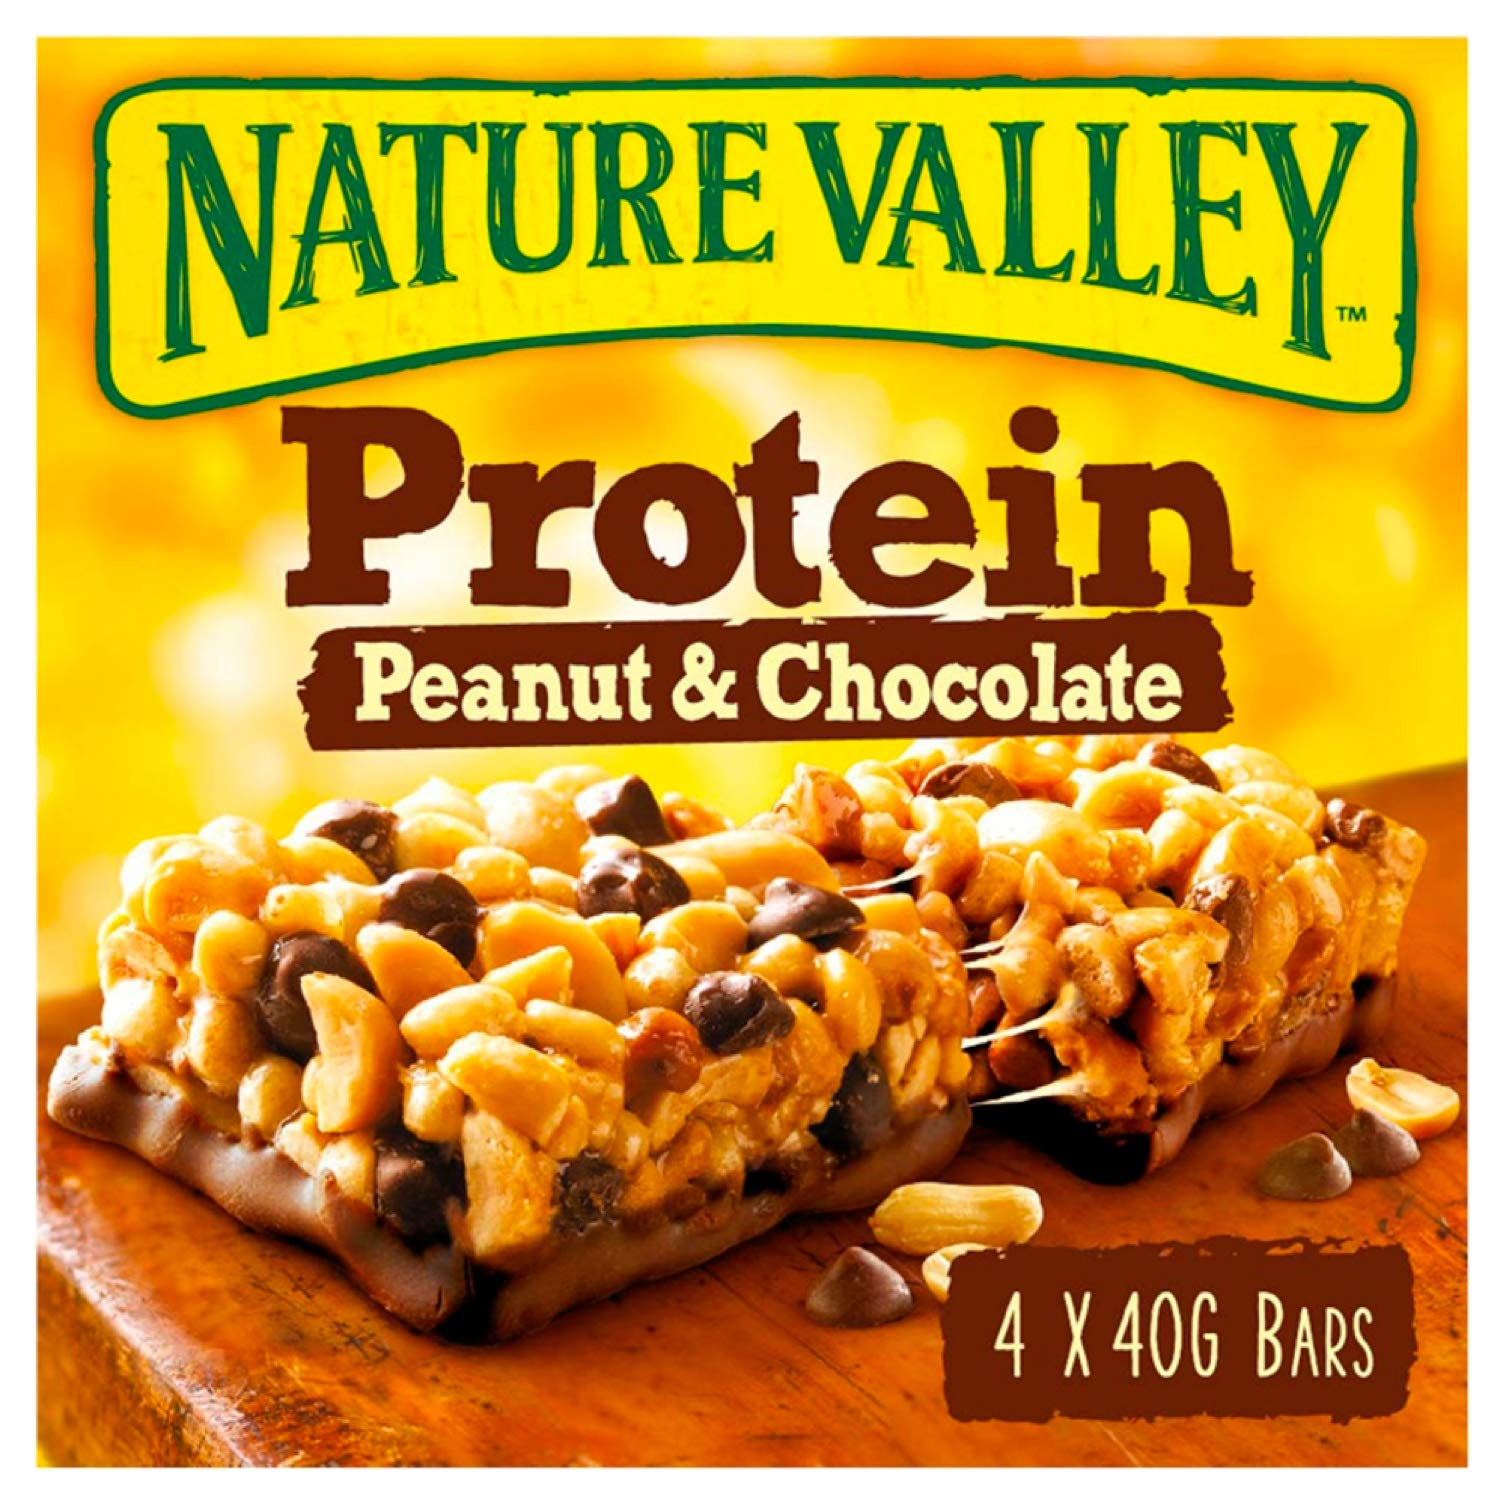 Nature Valley Protein Peanut & Chocolate Gluten Free Cereal Bars (Pack of 4 bars)